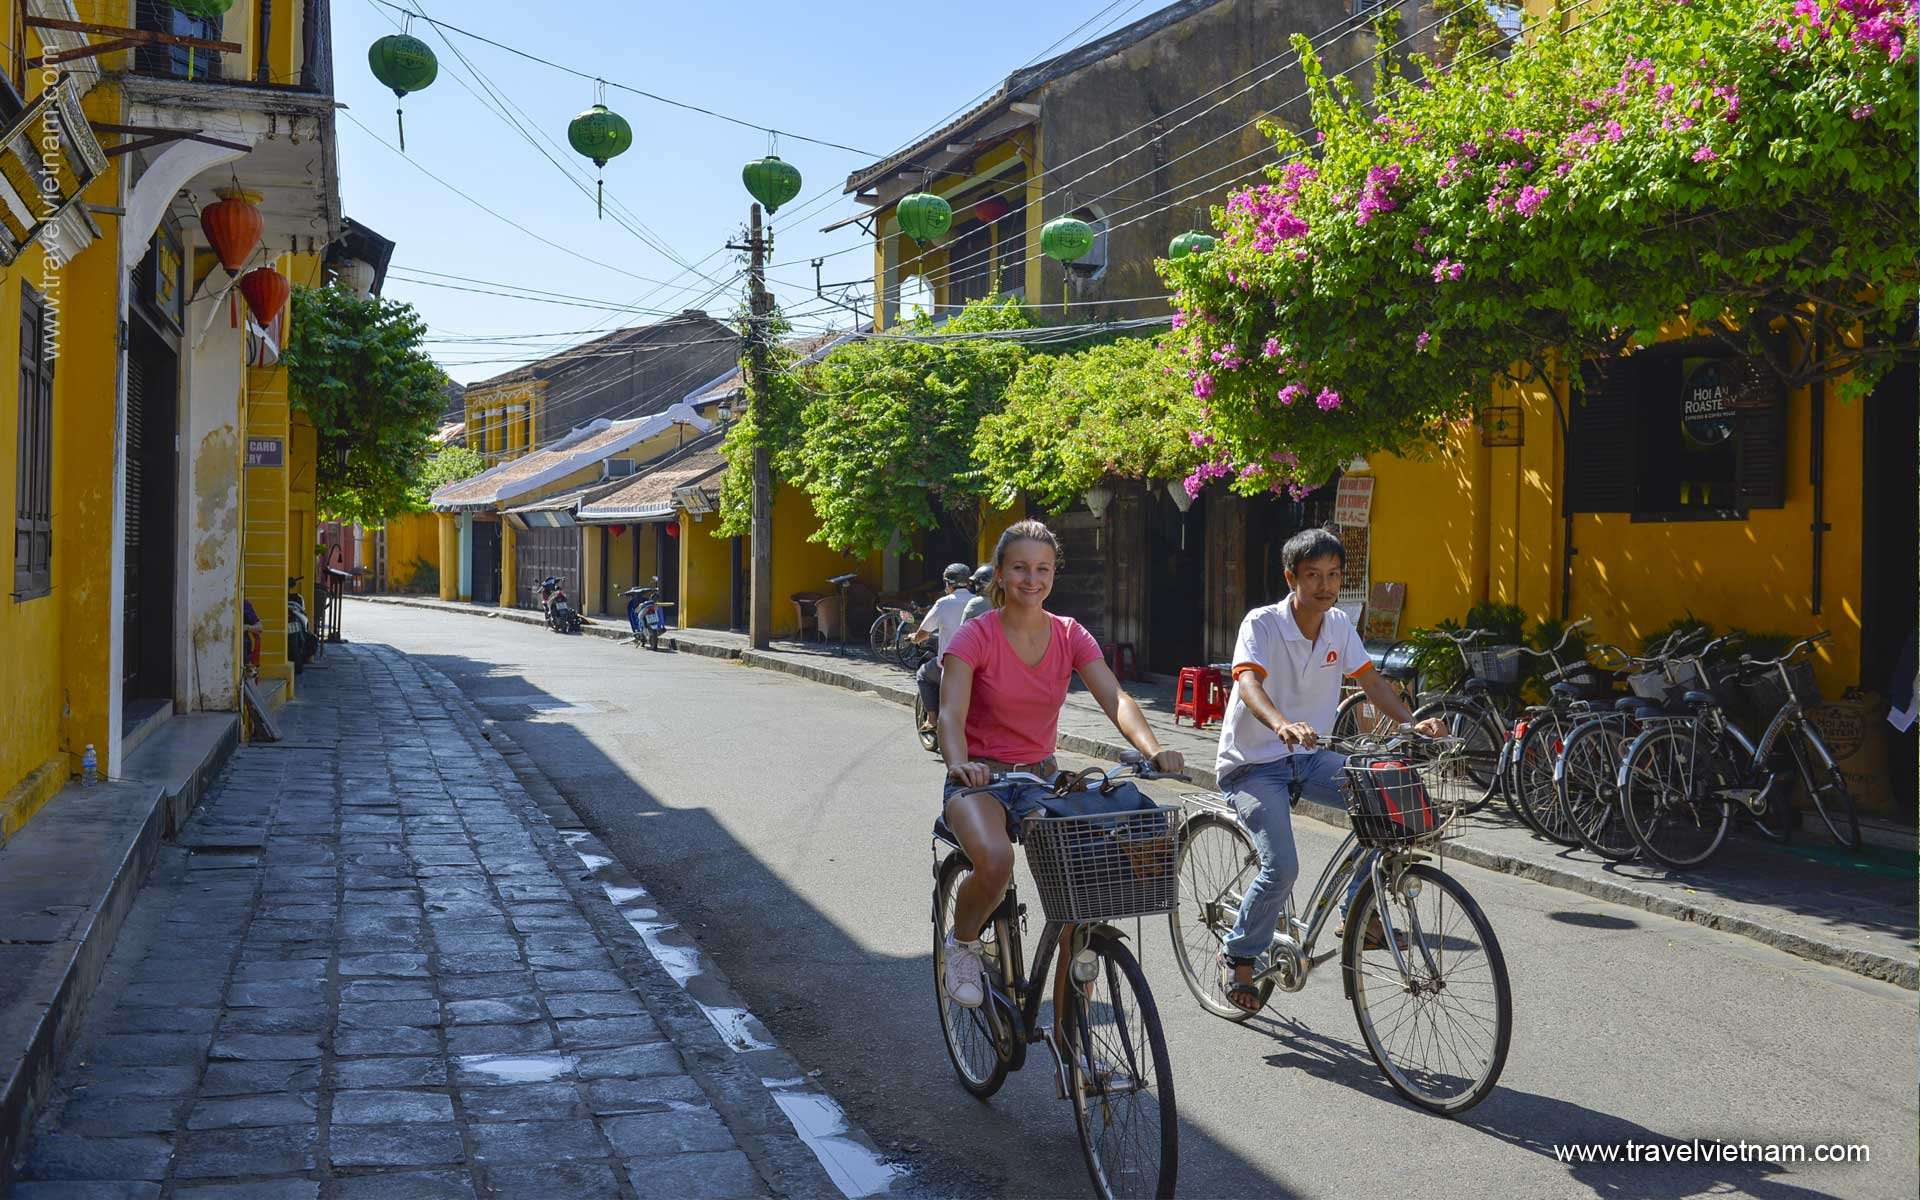 Biking in Hoian countryside